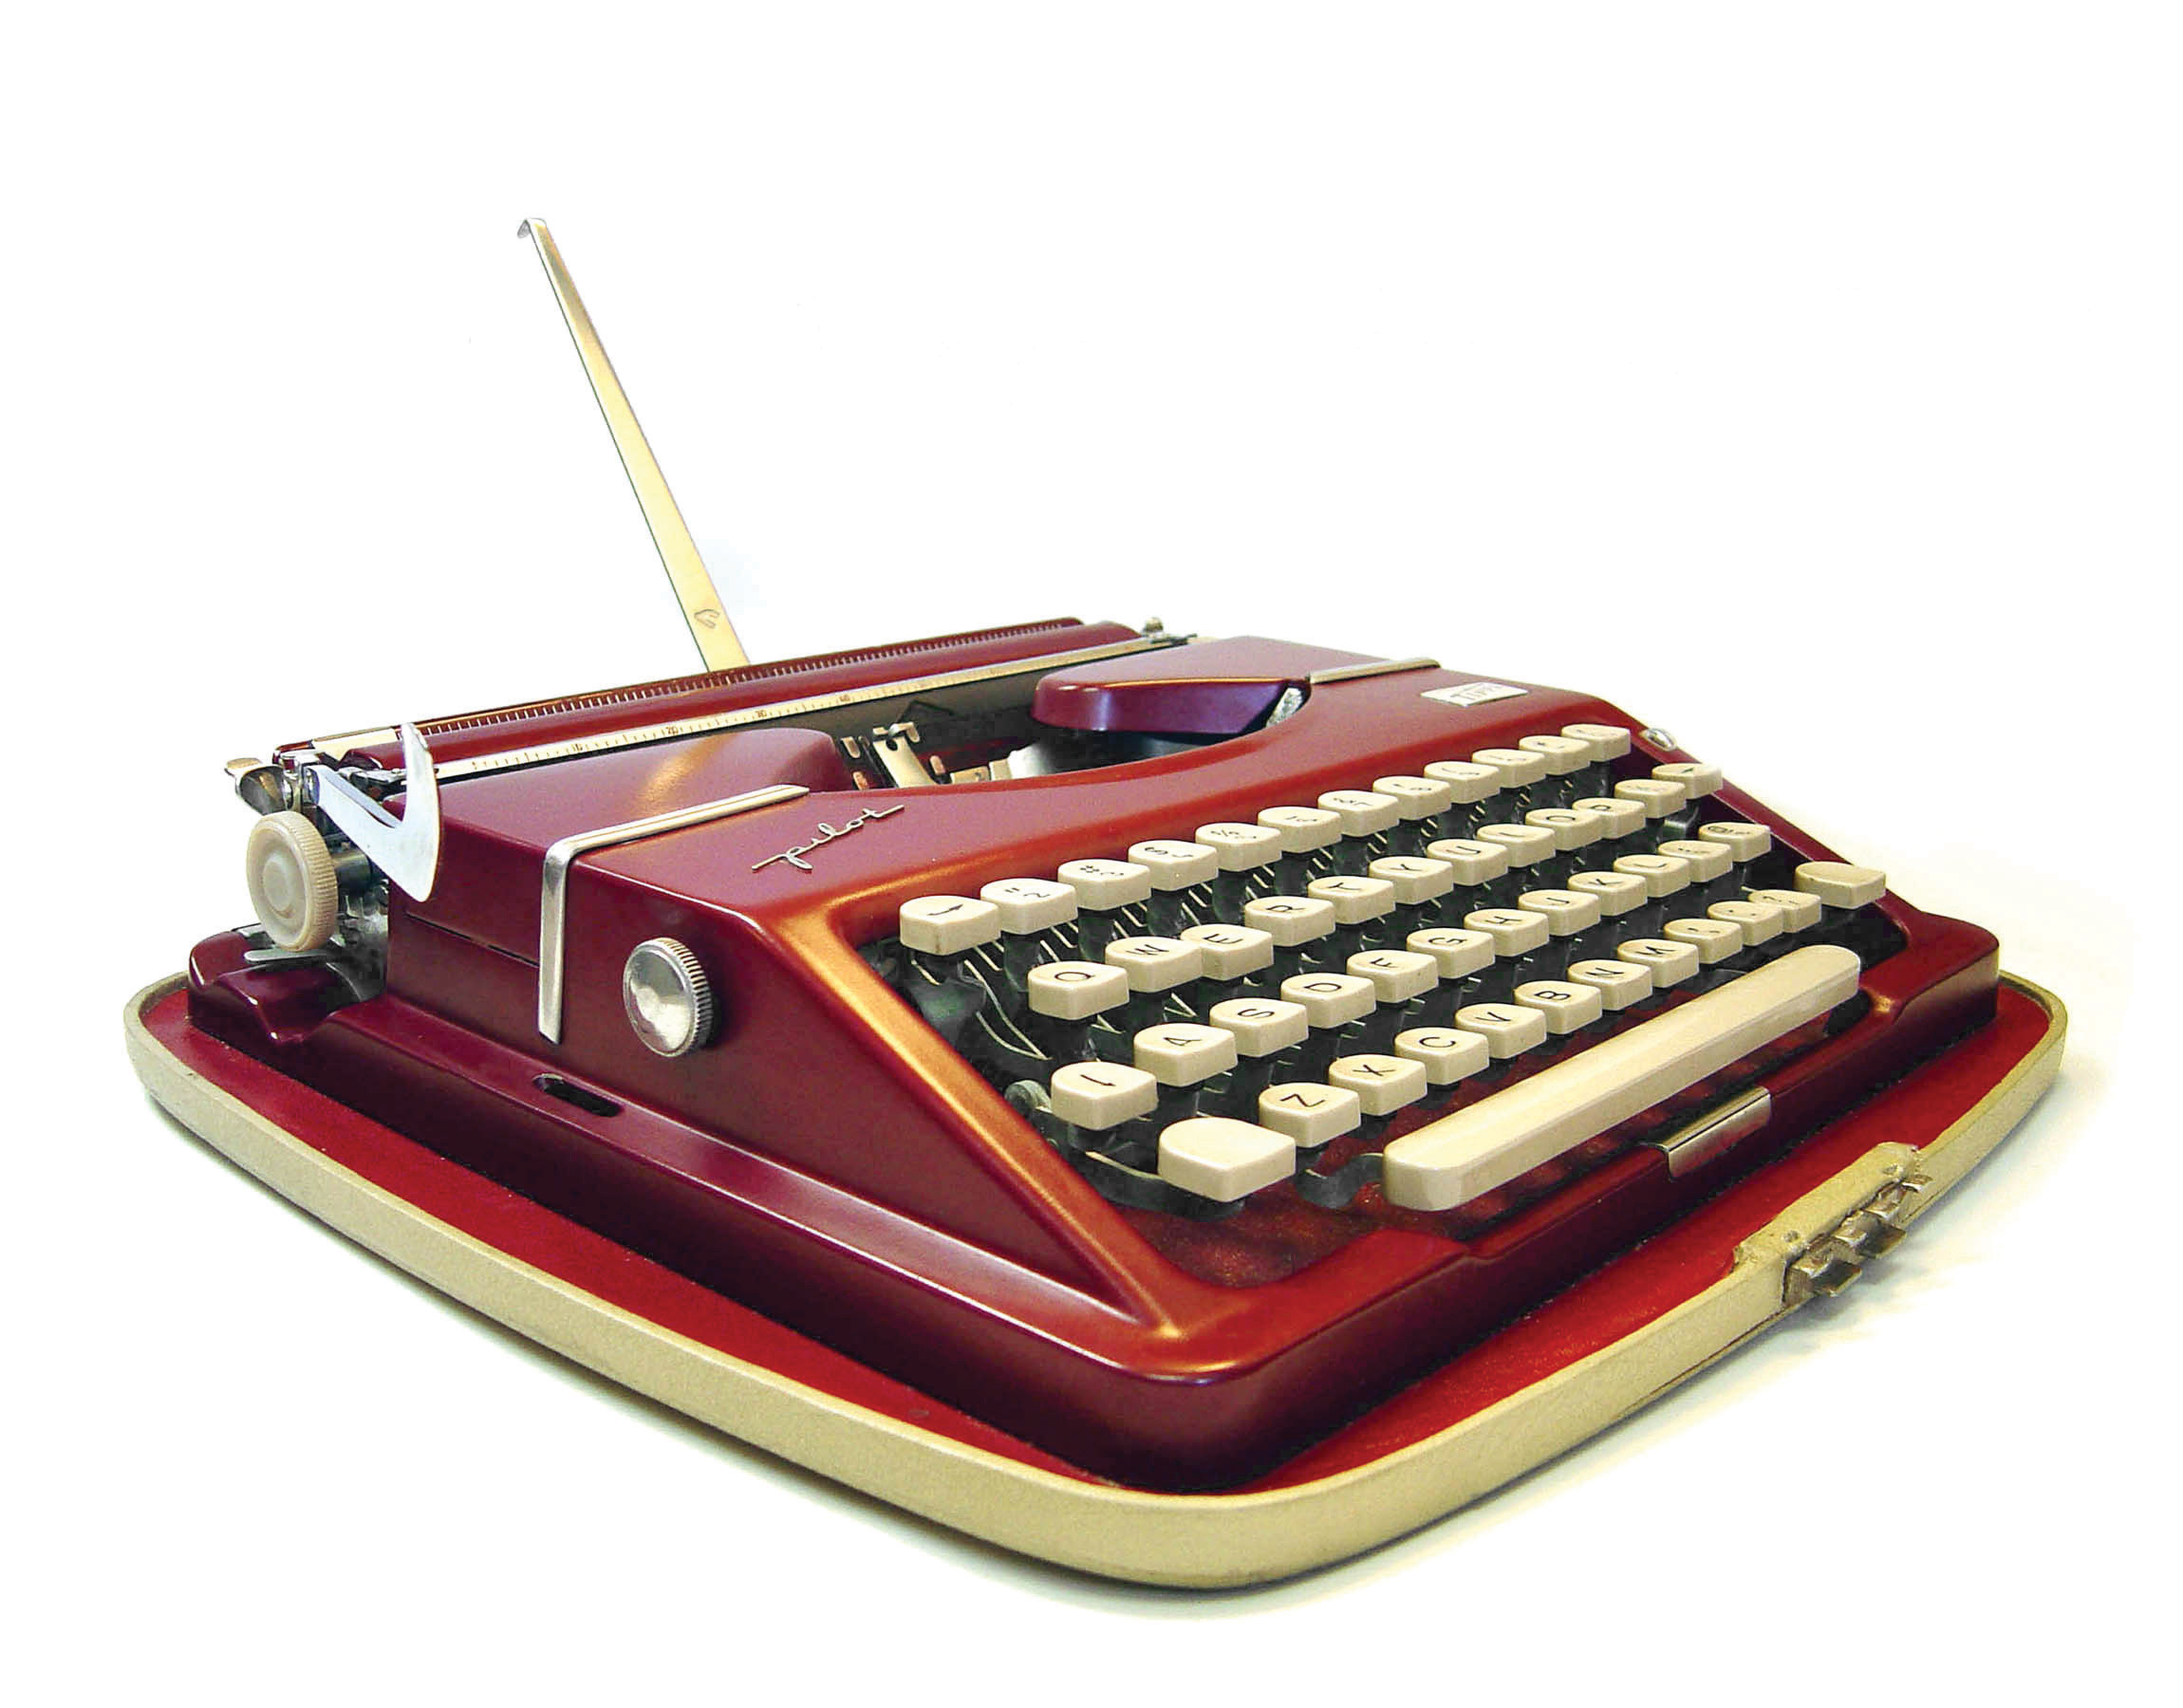 The Gossen Tippa Pilot, another ultraportable model, was made in Germany and used by Stanley Kubrick. ca. 1955